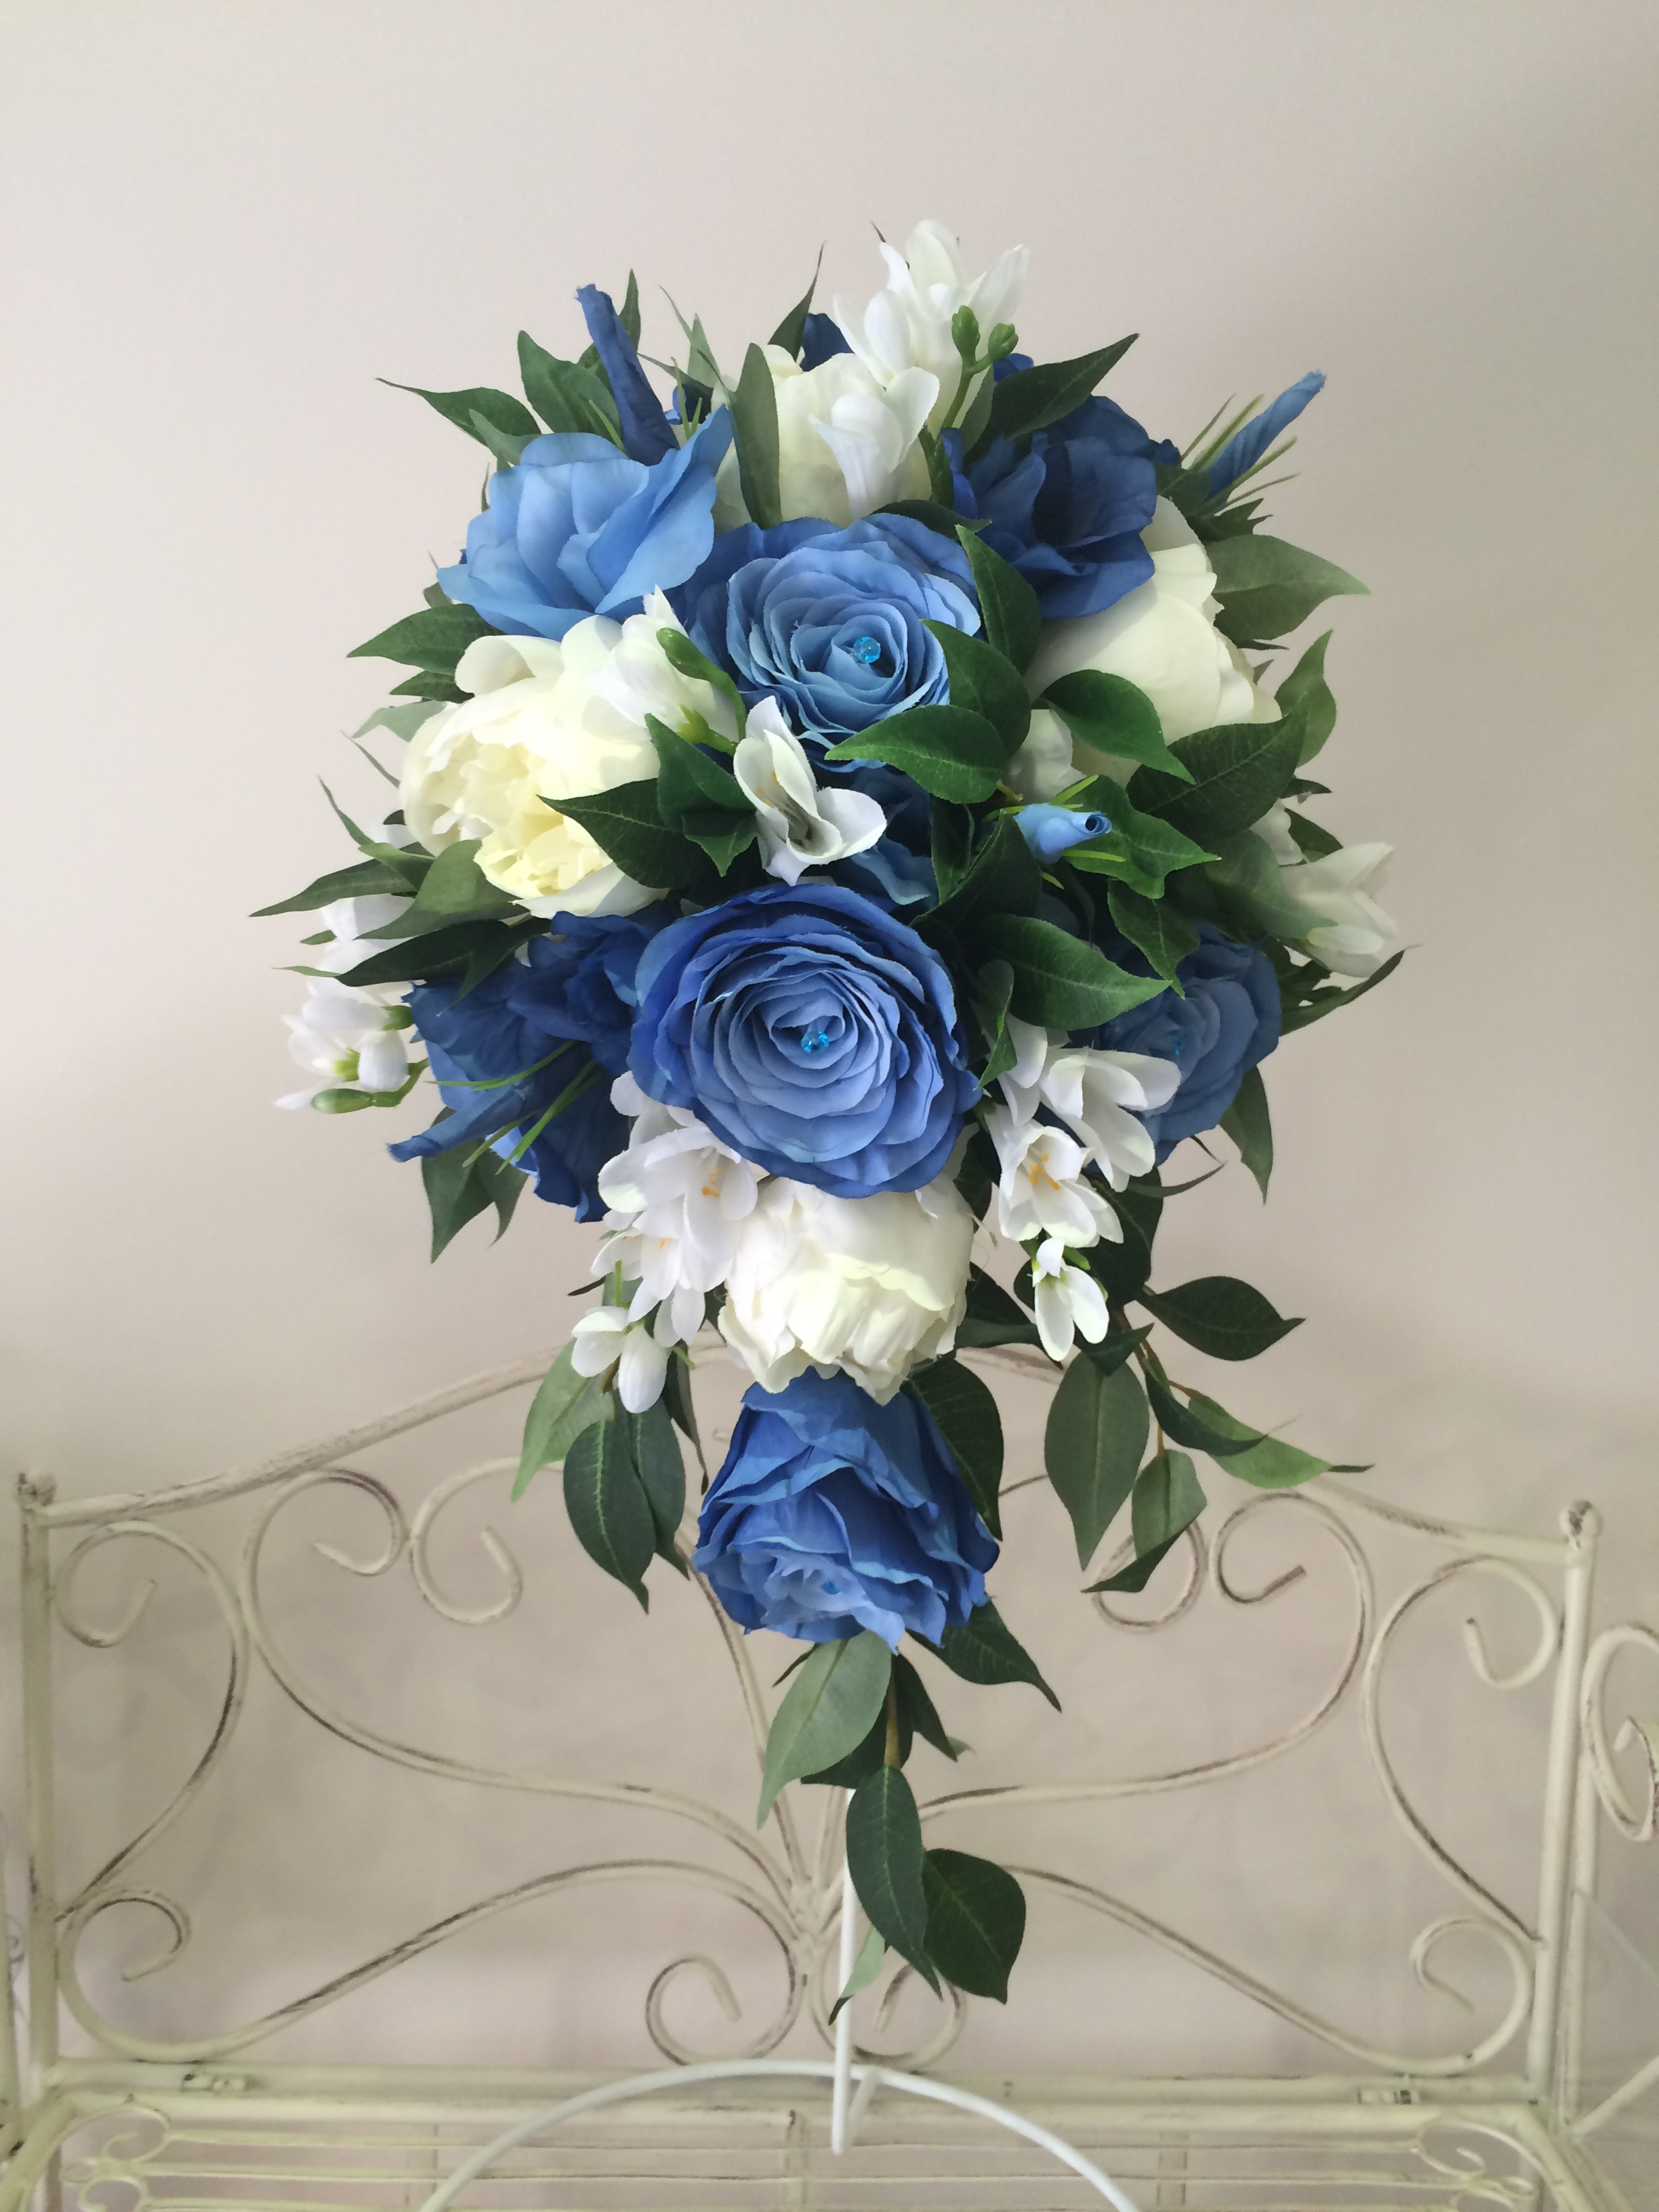 Long Teardrop Bouquet With Cream Peonies, Mood   Blue Roses, White Freesias & Cream Roses